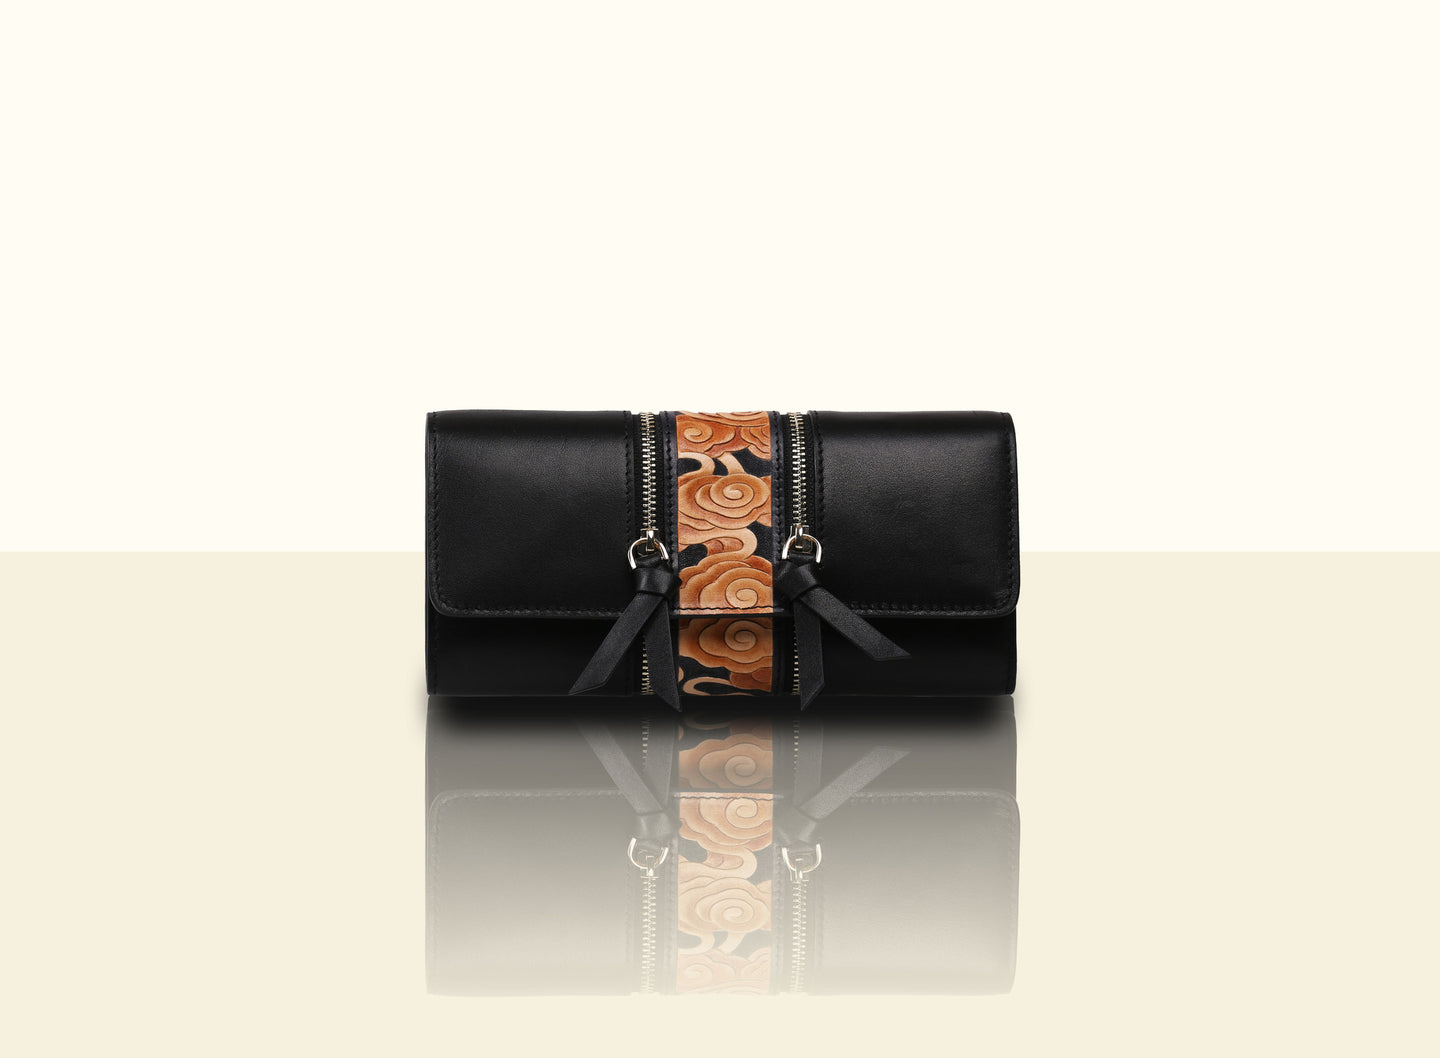 Preorder - Glorious Clouds Wallet - Black and Brown